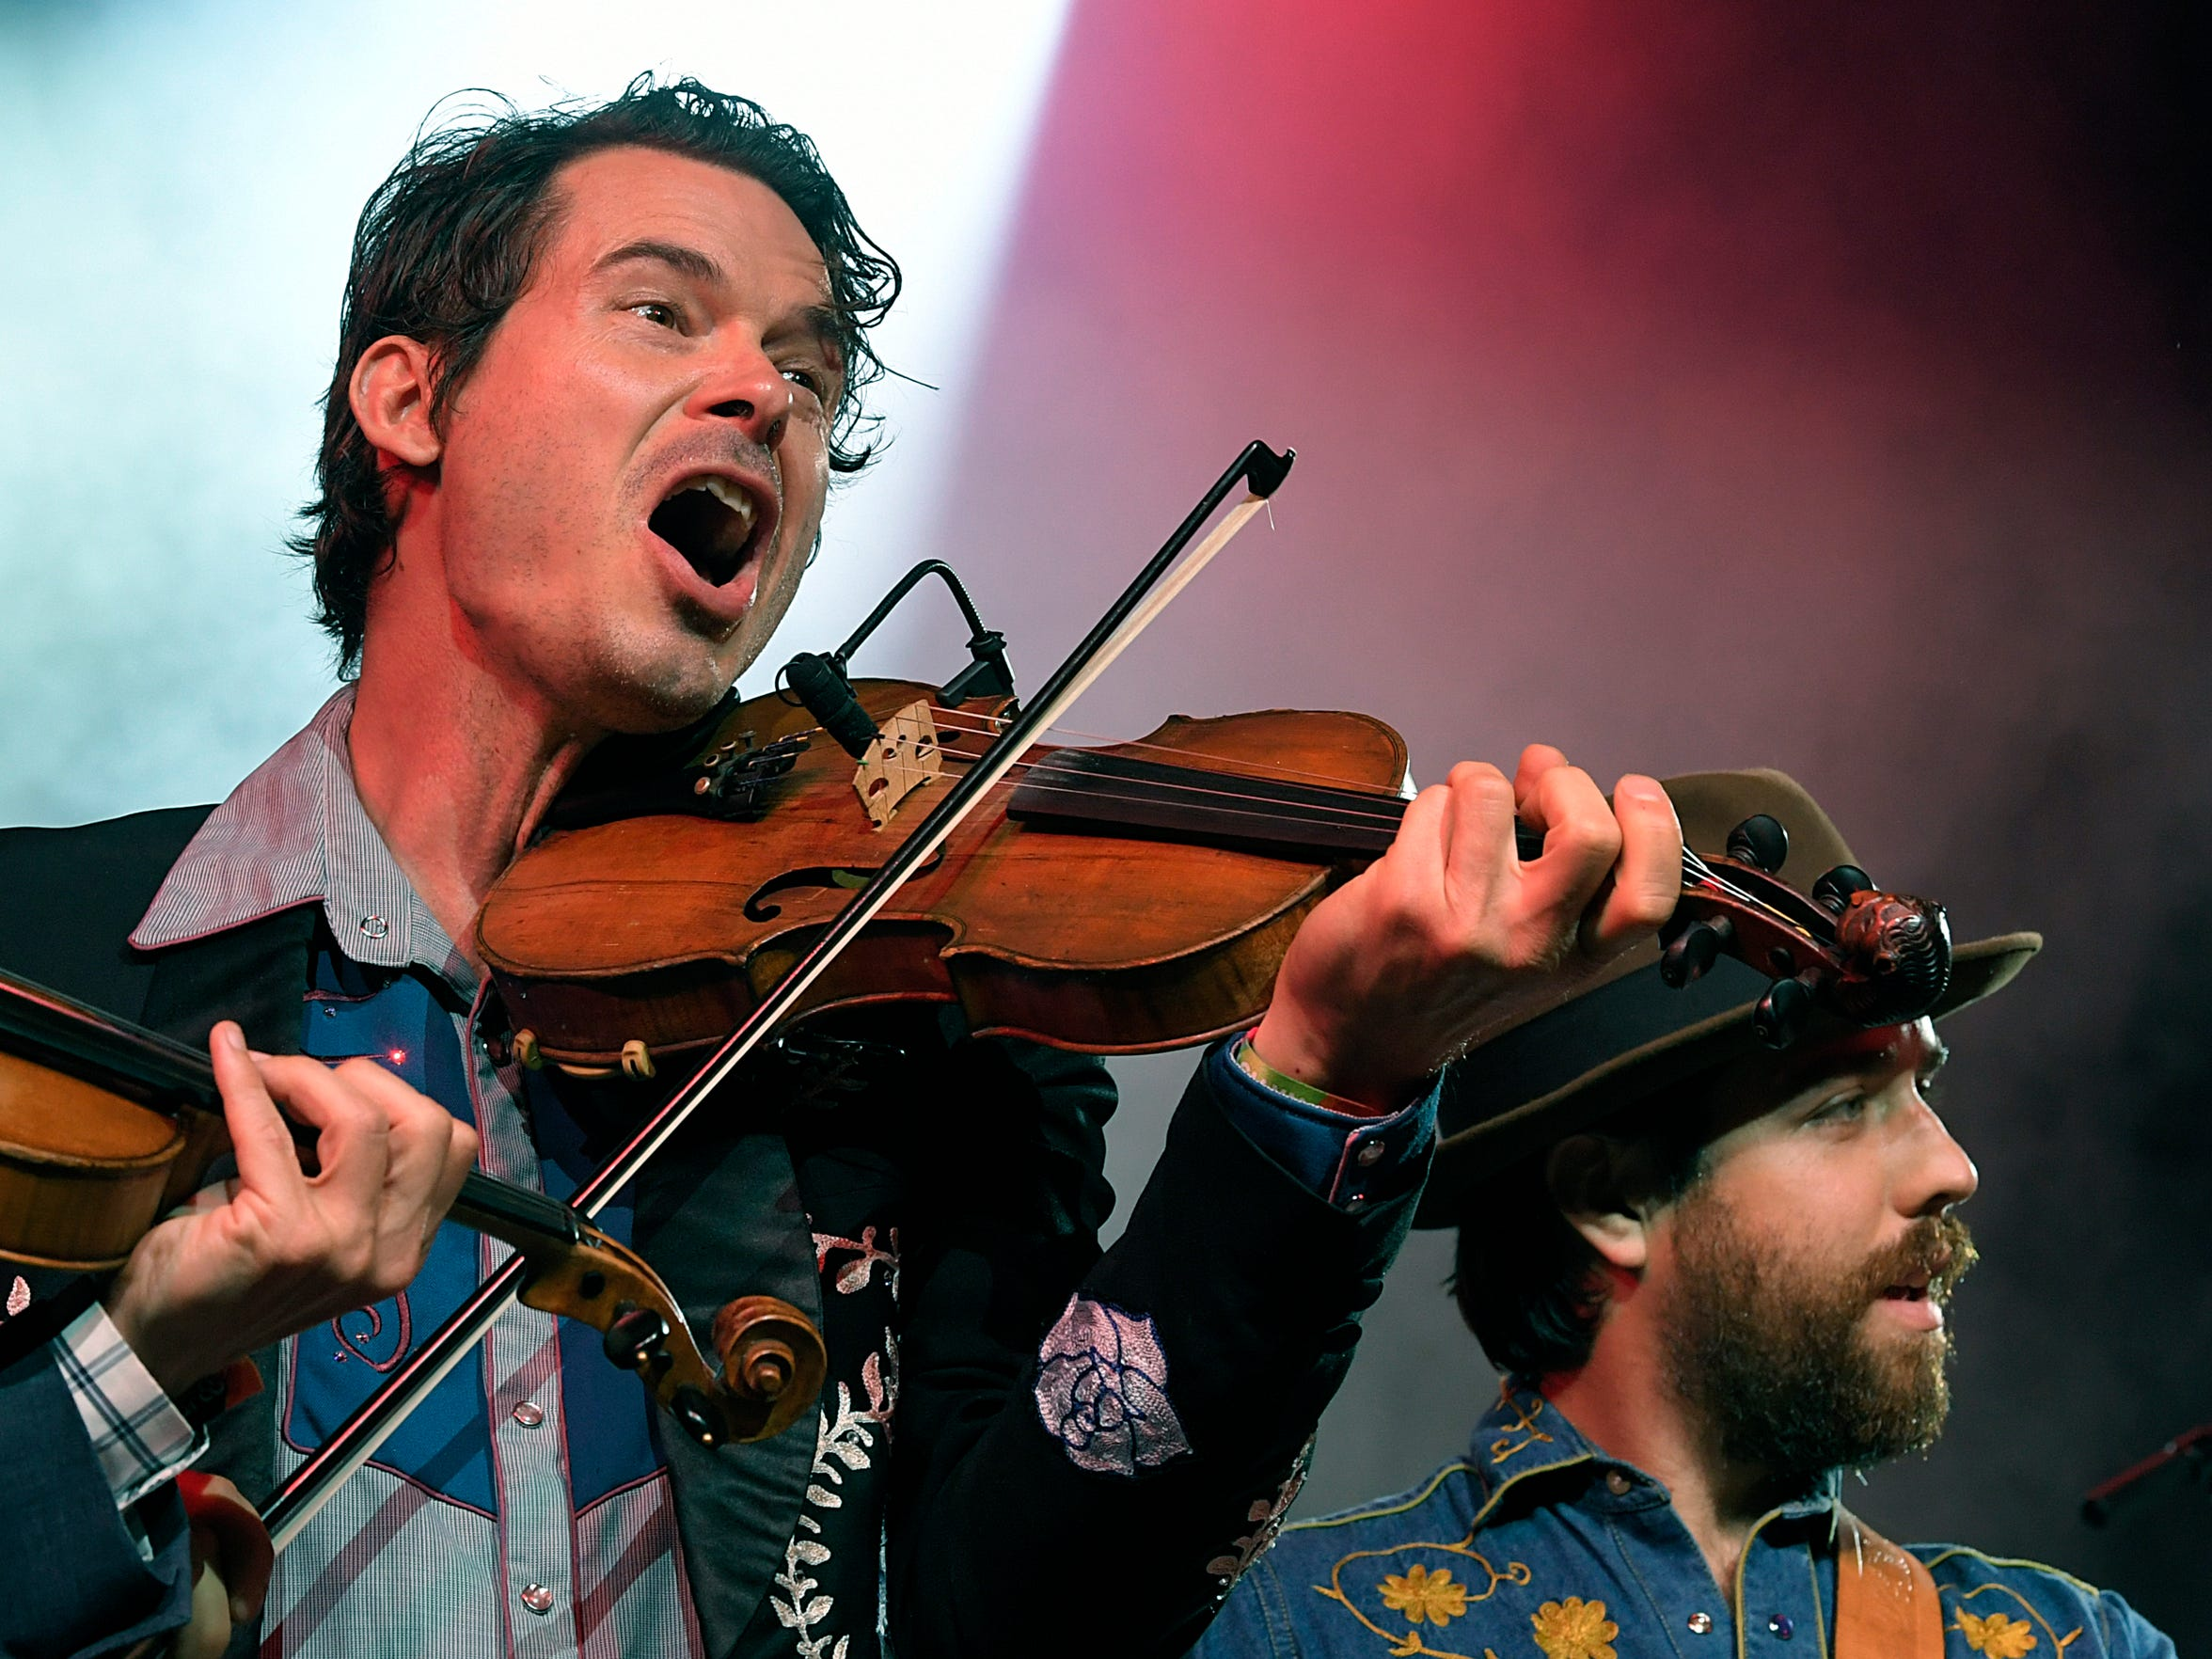 Old Crow Medicine Show's Ketch Secor sings during the